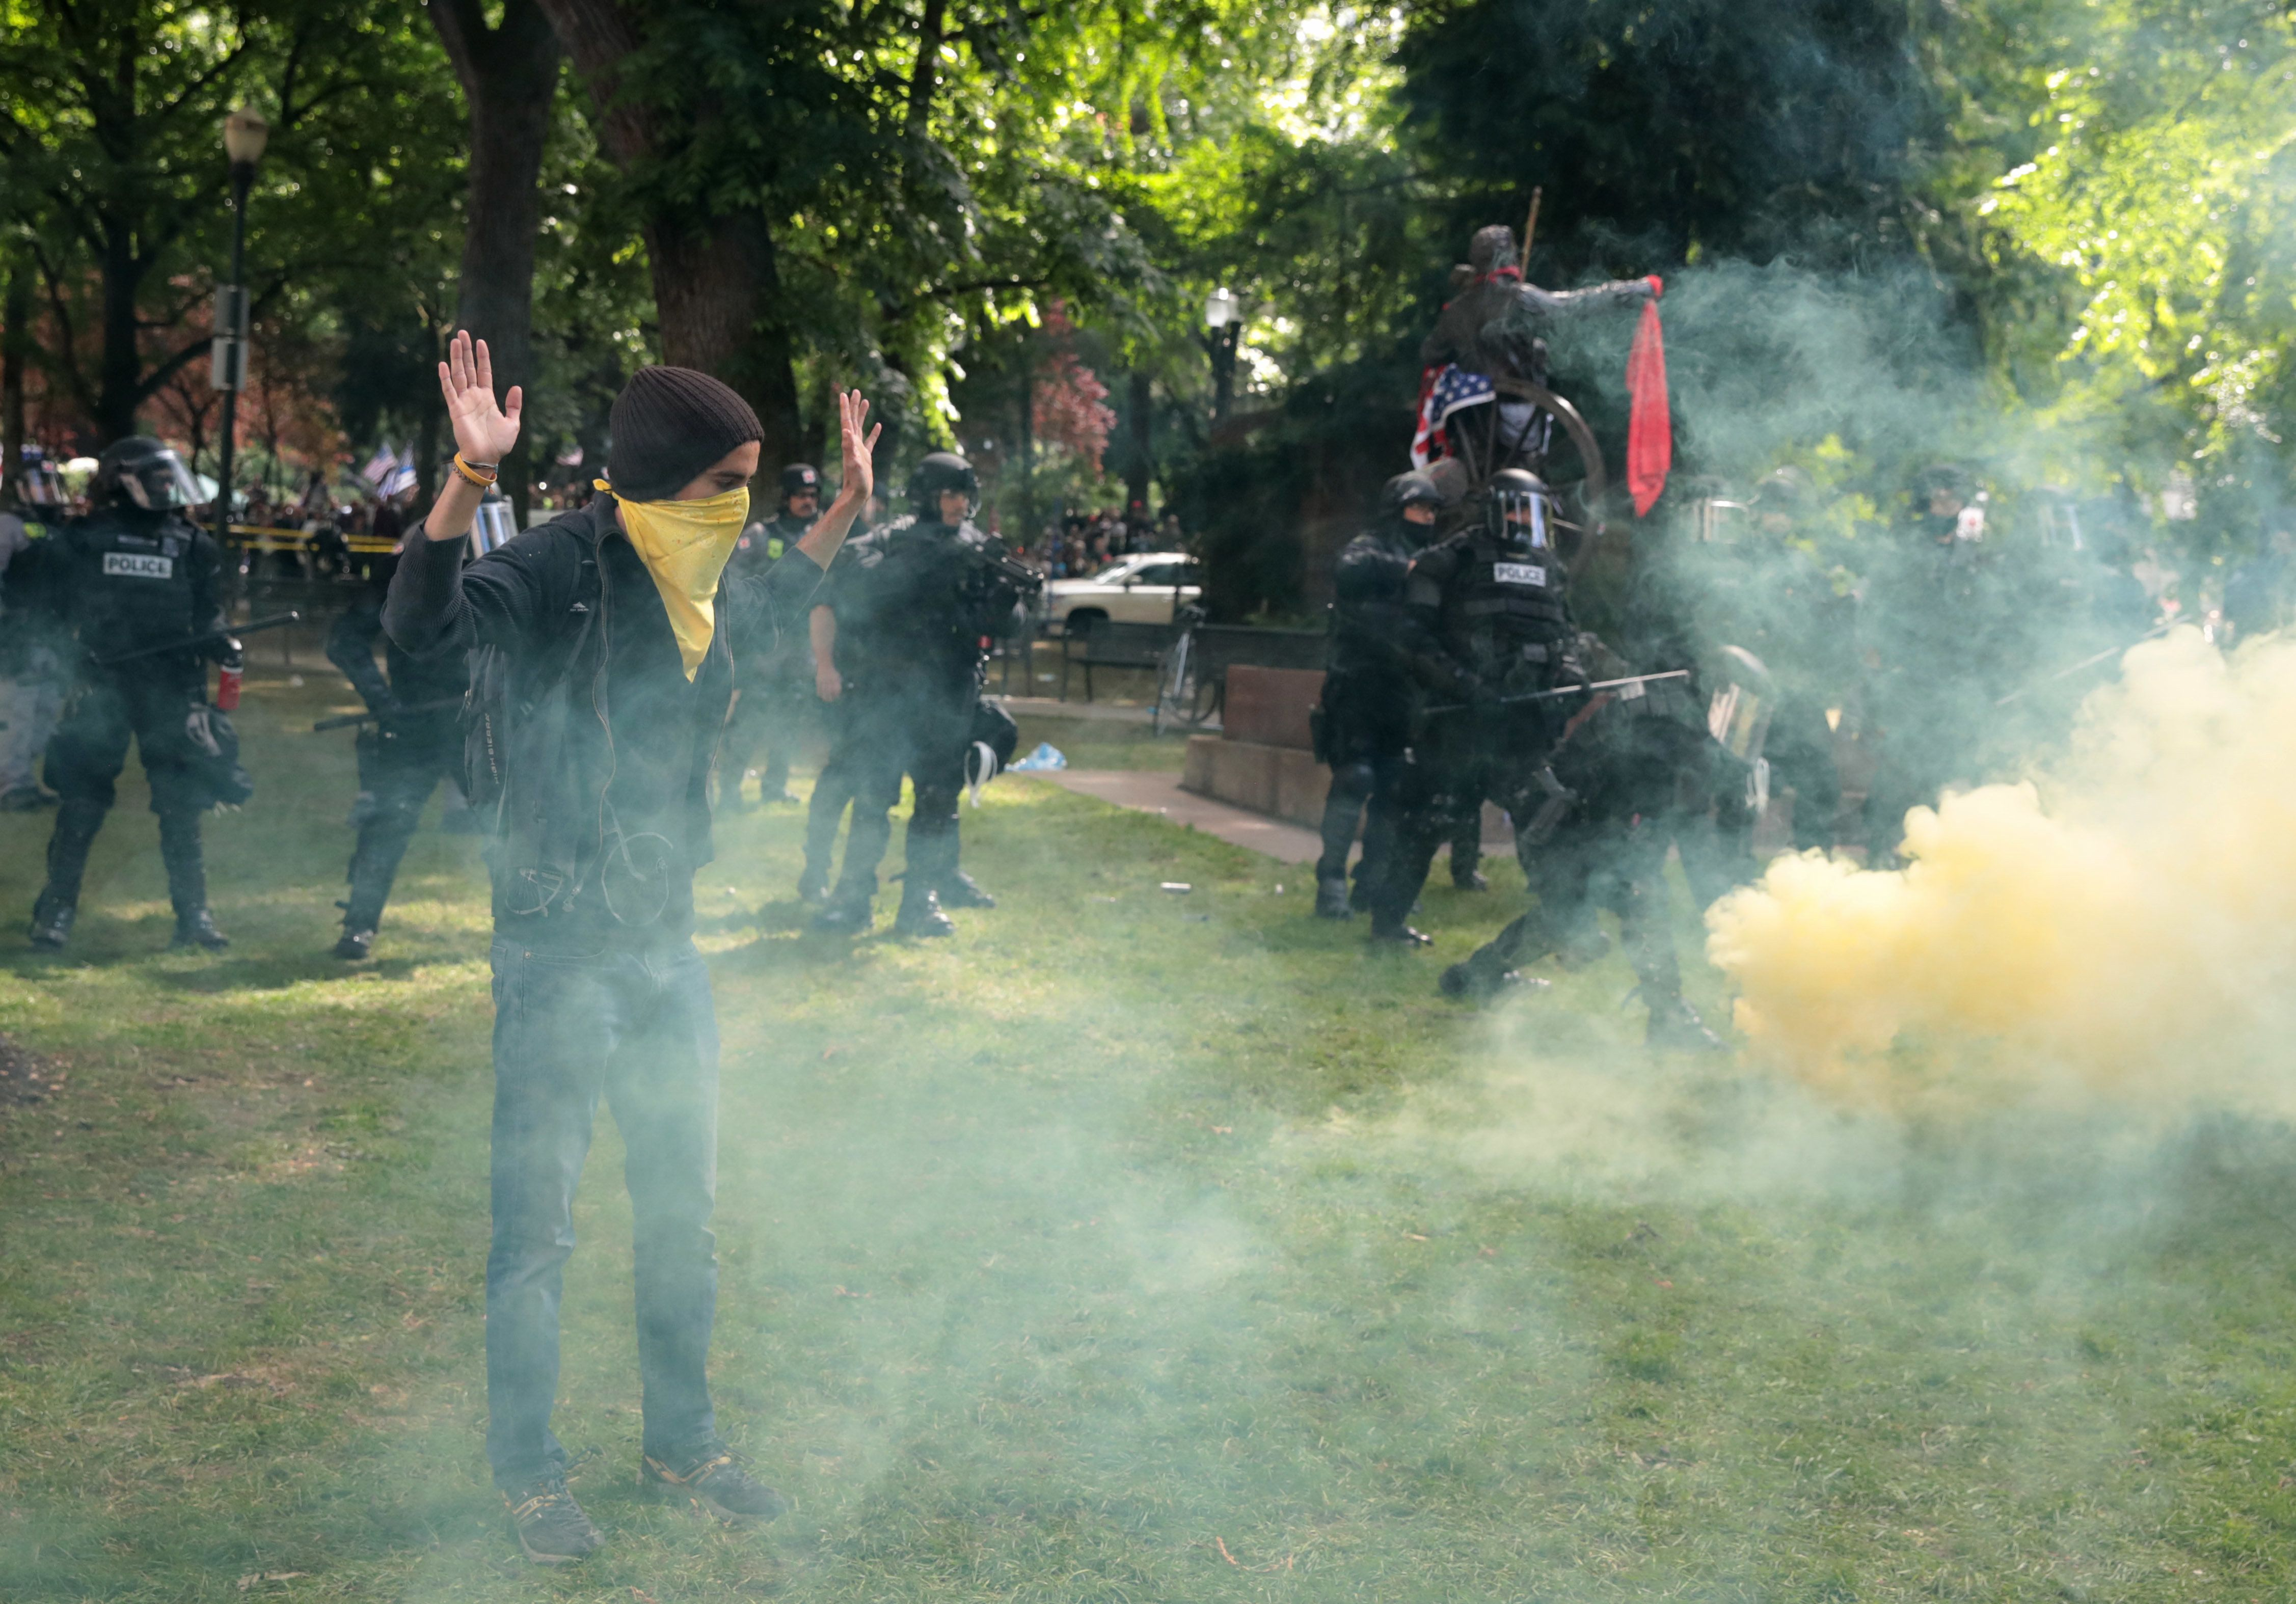 PORTLAND, OR - JUNE 04:  A man raises his hands as police clash with demonstrators as they try to clear 'Antifa' members and anti-Trump protesters from the area during a protest on June 4, 2017 in Portland, Oregon. Police used tear gas, flash bangs, and rubber bullets to clear the crowd. A protest dubbed 'Trump Free Speech' by organizers was met by a large contingent of counter-demonstrators who viewed the protest as a promotion of racism. The demonstrations come in the wake of the recent violent attack on the city's MAX train line when Ricky Best, 53, and Taliesin Namkai-Meche, 23, were stabbed to death and Micah Fletcher,21, was severely injured after they tried to protect two teenage girls, one of whom was wearing a hijab, from being harassed with racial taunts by suspect Jeremy Christian.  (Photo by Scott Olson/Getty Images)